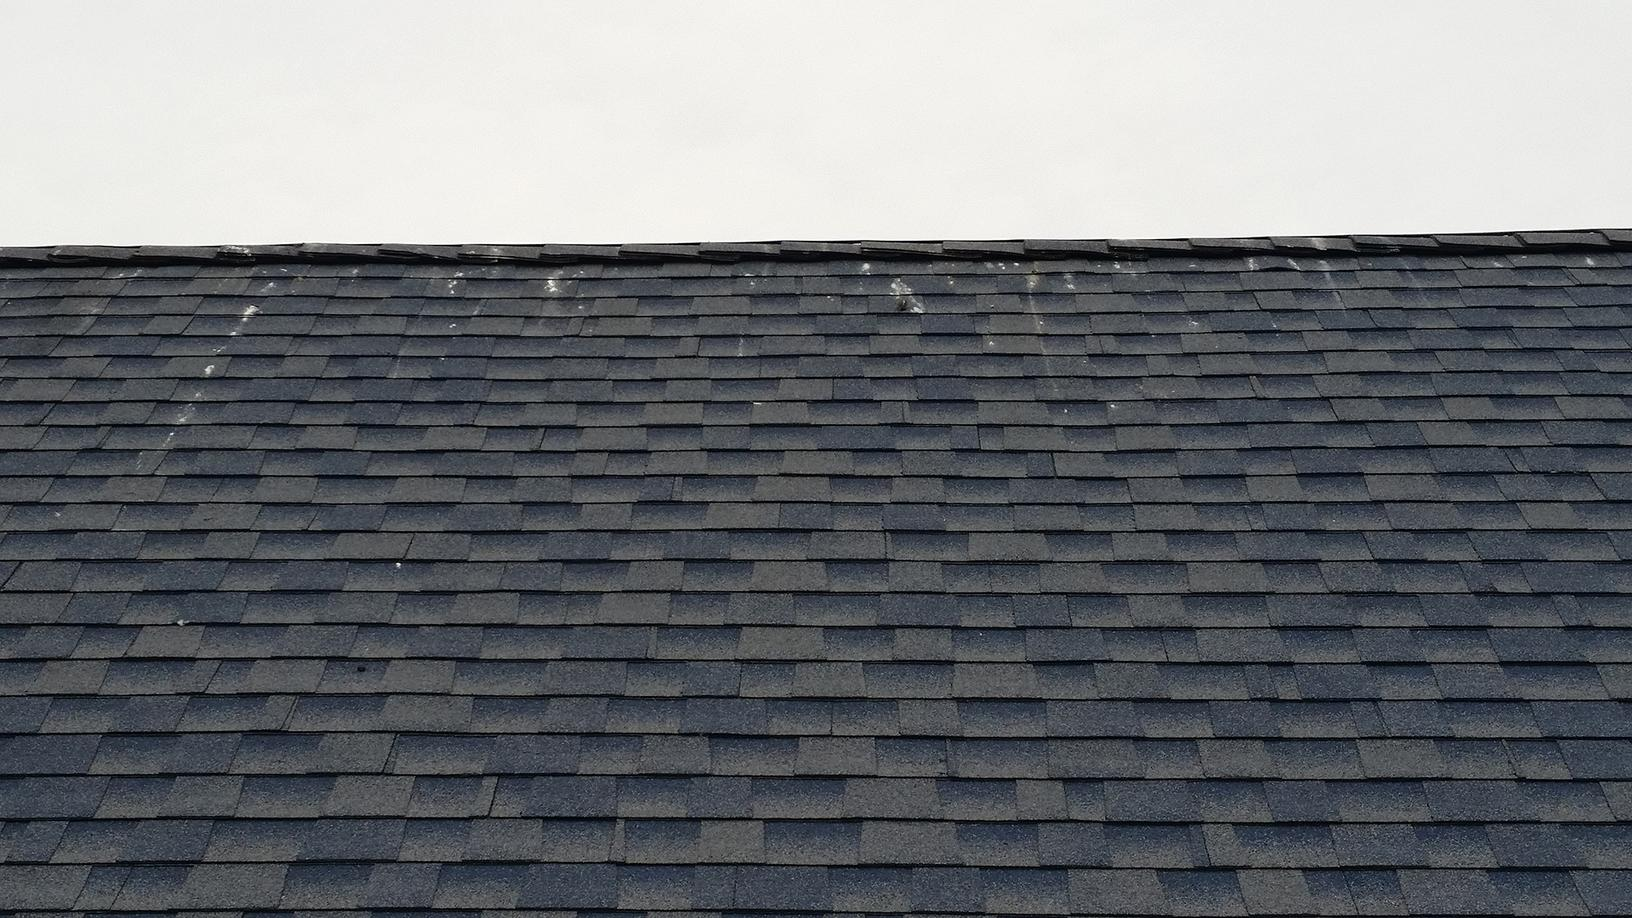 This roof will be vulture-free after installation of our deterrents.